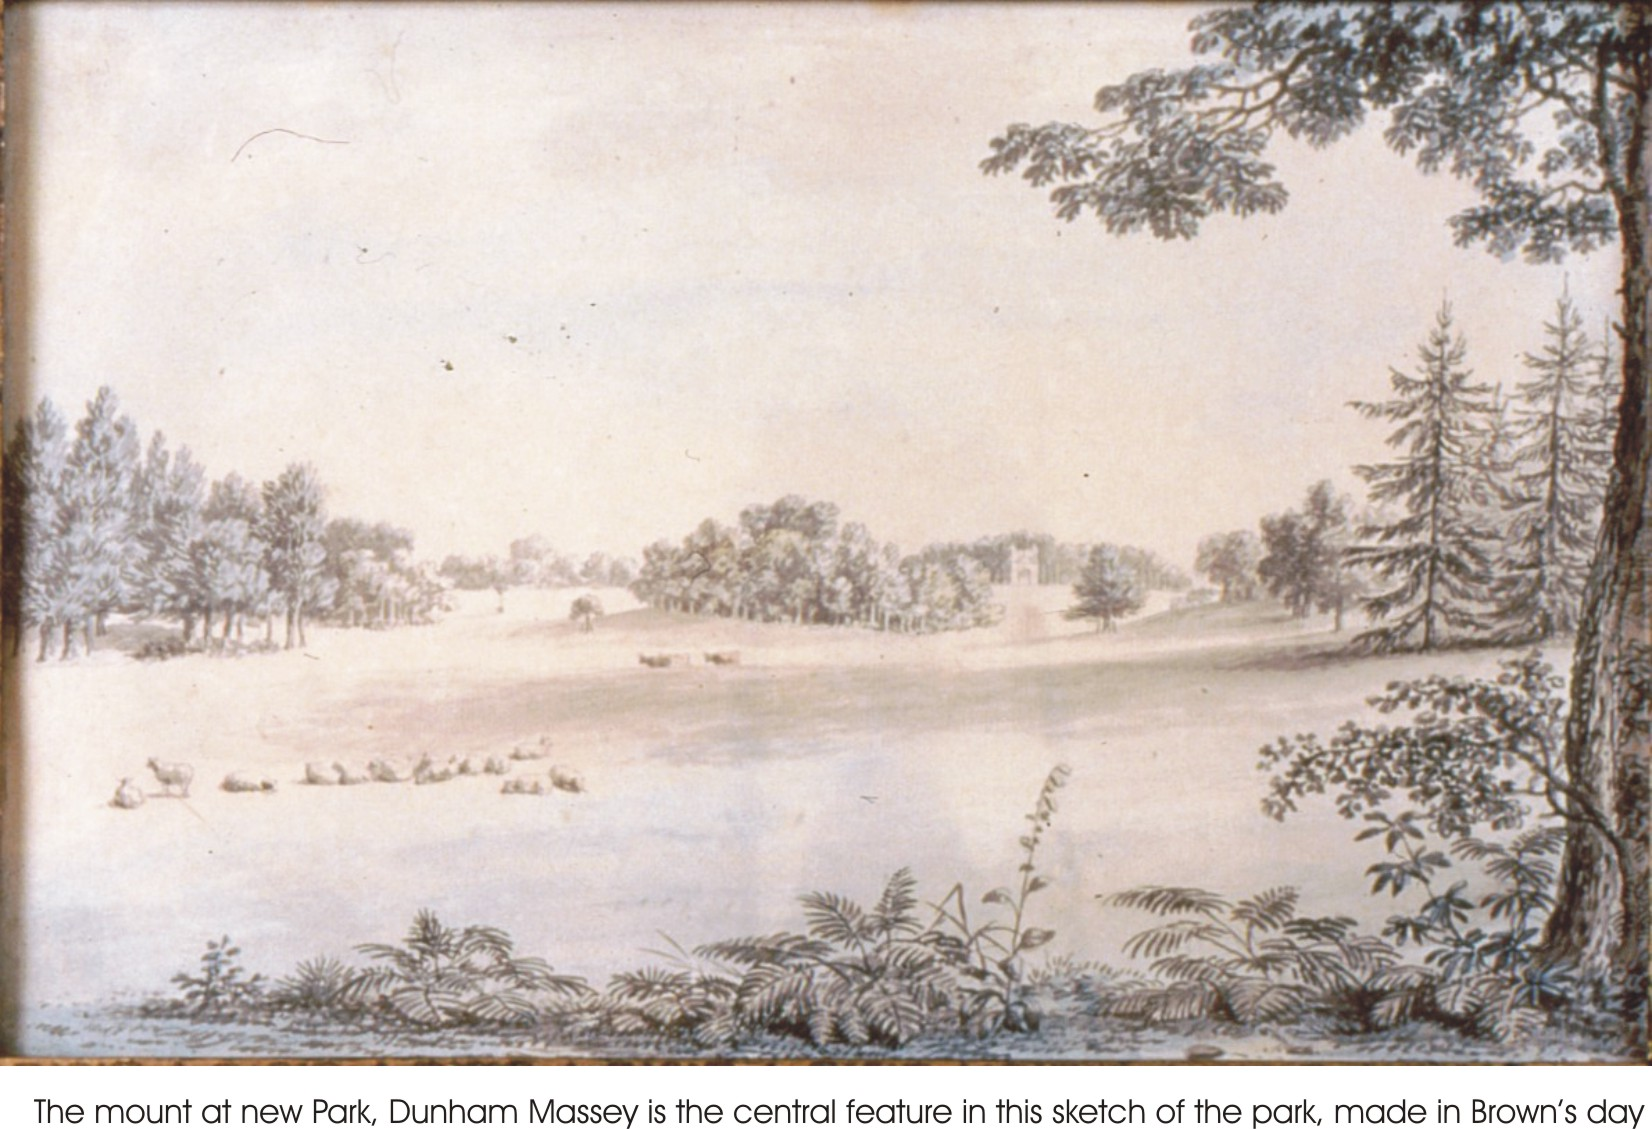 New Park, Dunham Massey, sketched in the late 18th century